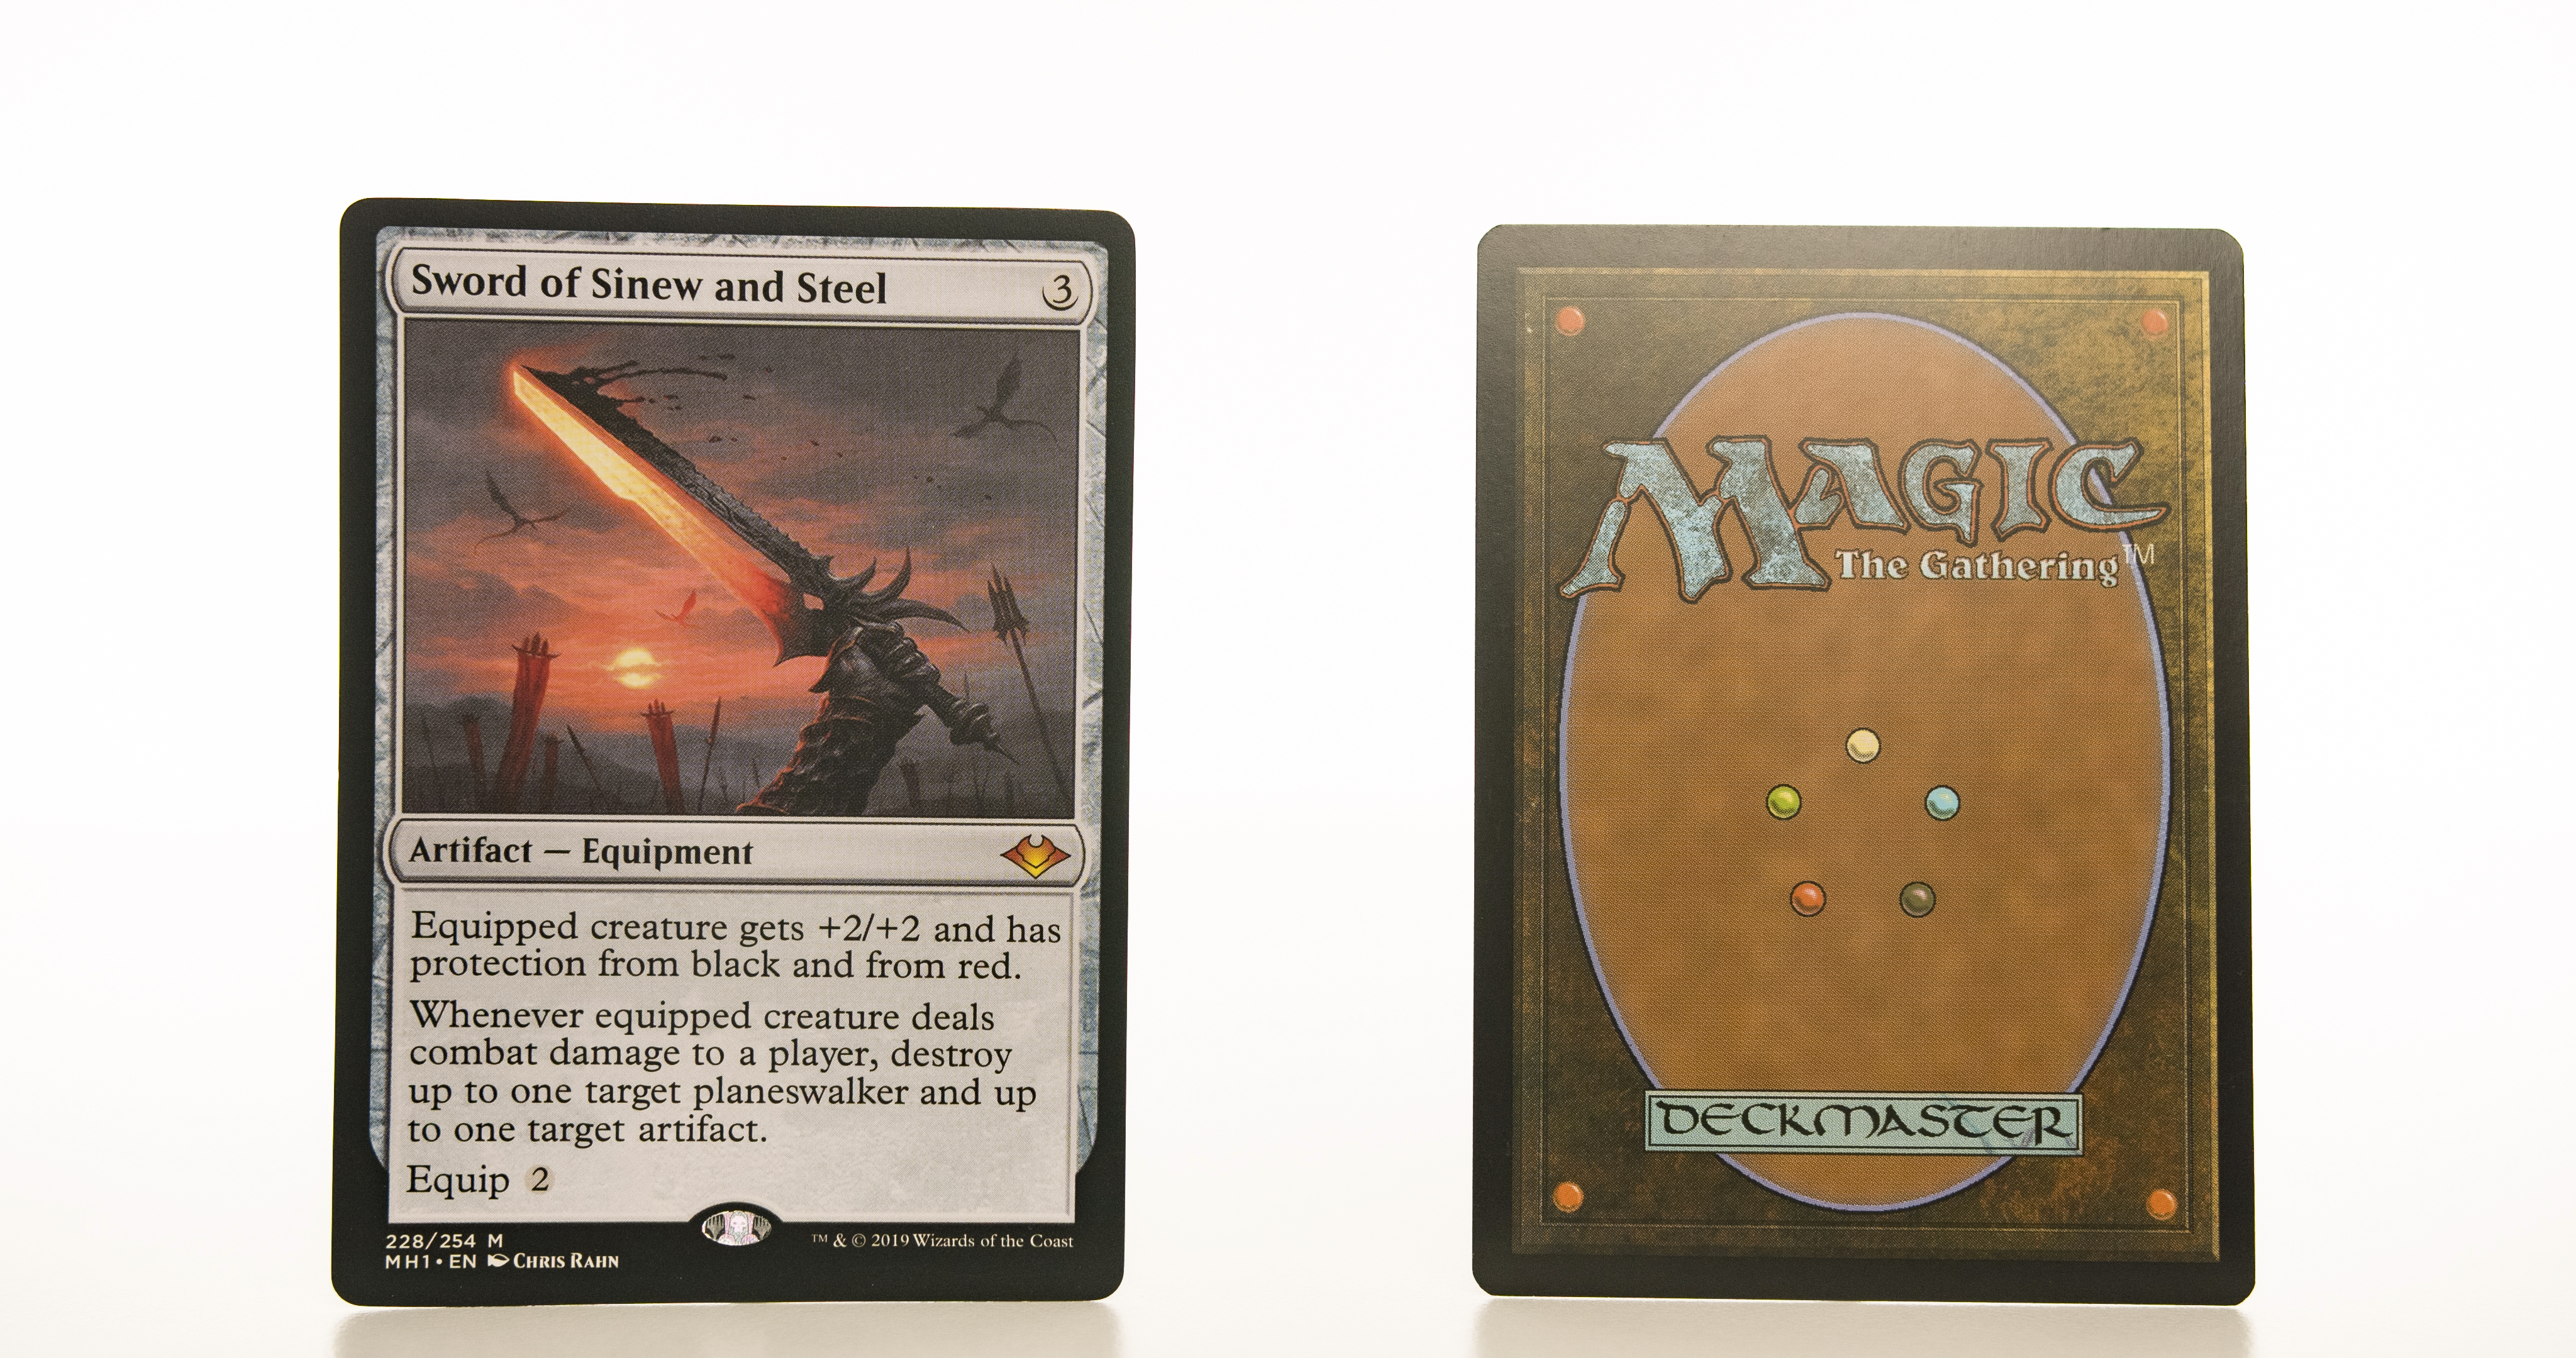 Sword of Sinew and Steel MH1 mtg proxy magic the gathering tournament proxies GP FNM available